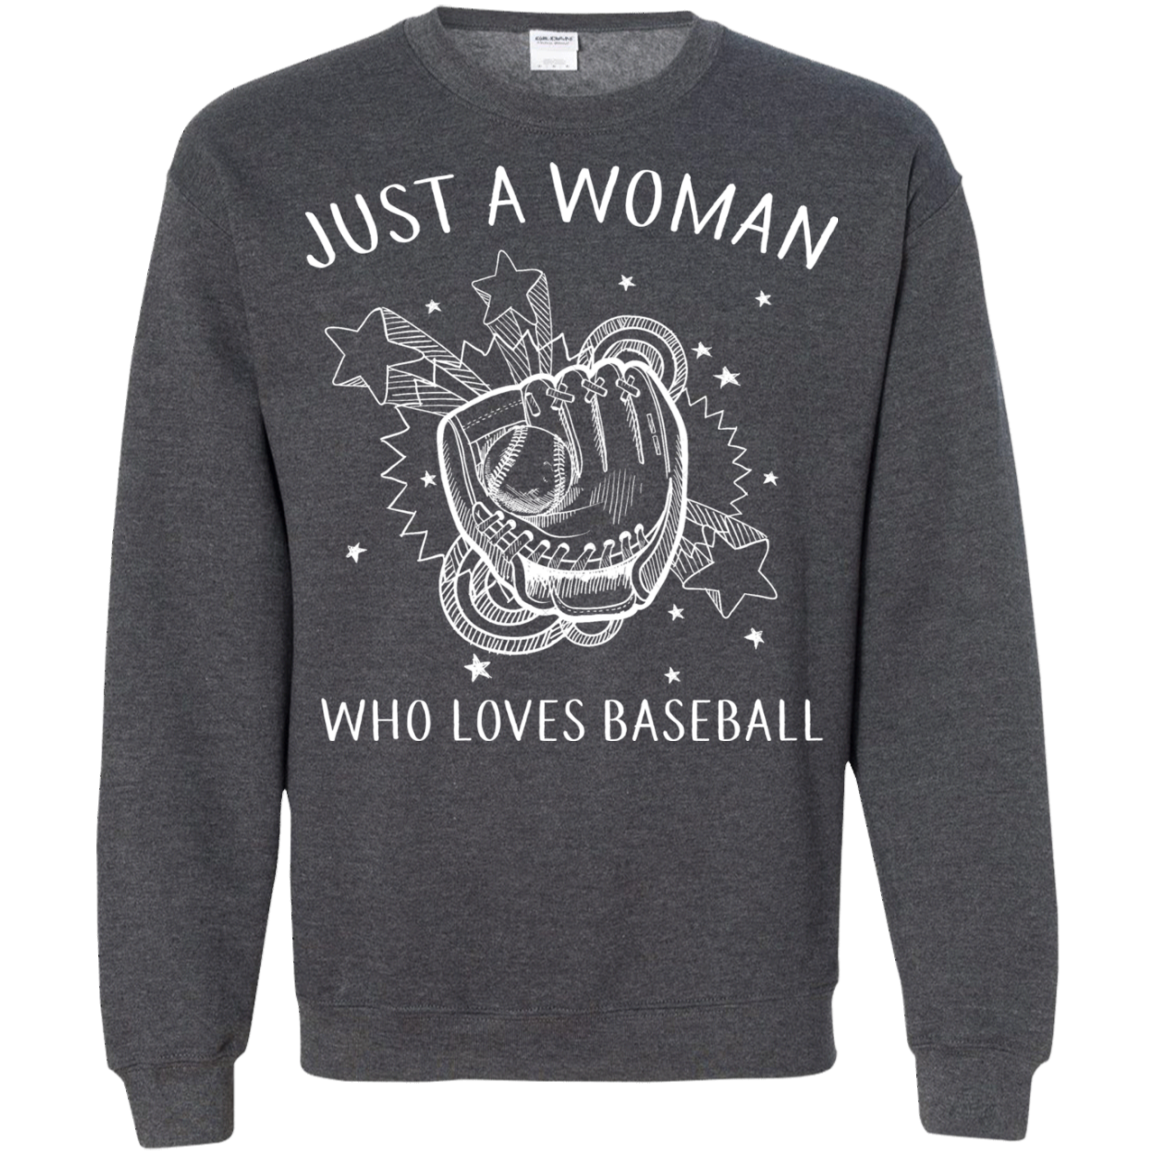 Baseball T shirts Woman Loves Baseball Hoodies Sweatshirts  TH